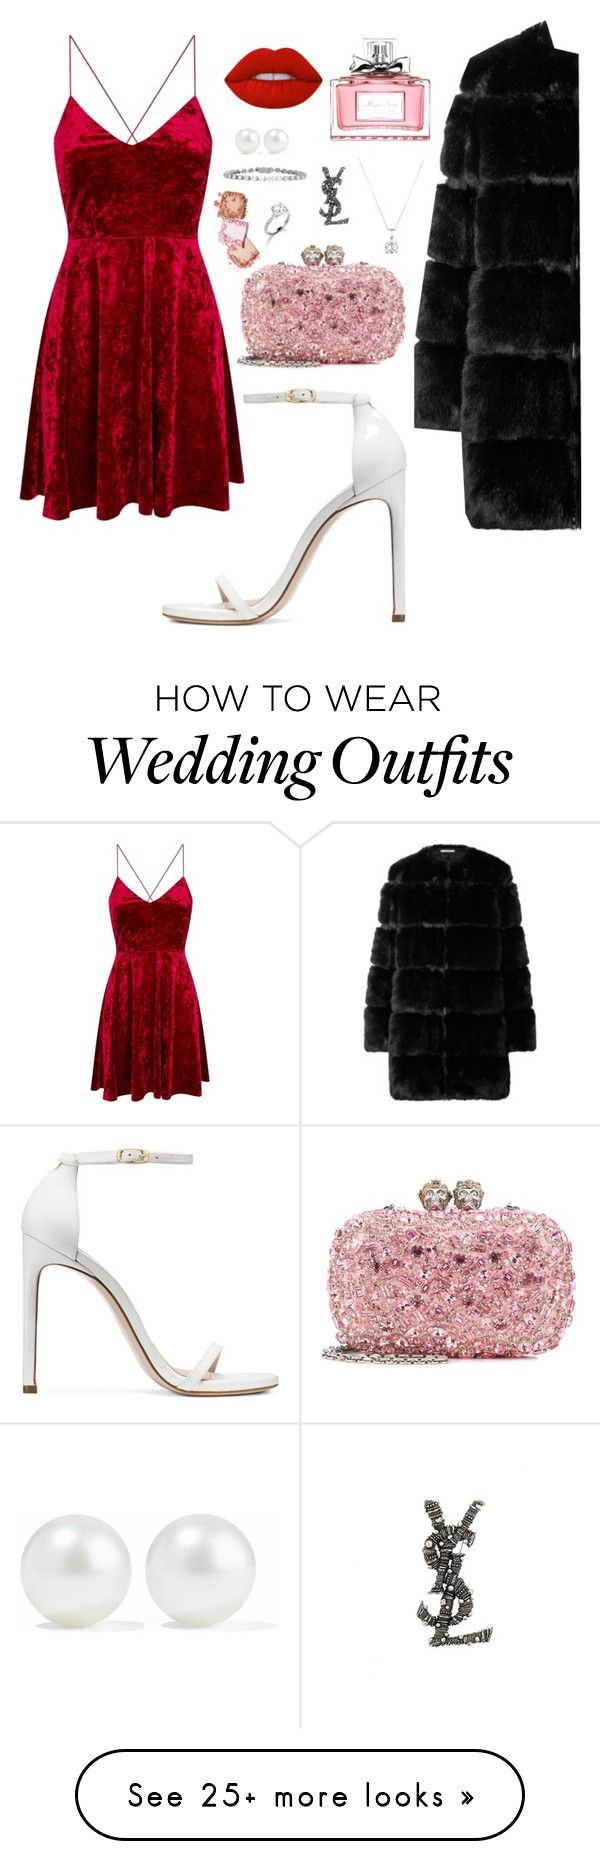 """Red"" by melissa-gonzaleza on Polyvore featuring Stuart Weitzman, Givenchy, Alexander McQueen, Lime Crime, Christian Dior, Kenneth Jay Lane, Garrard and Yves Saint Laurent"